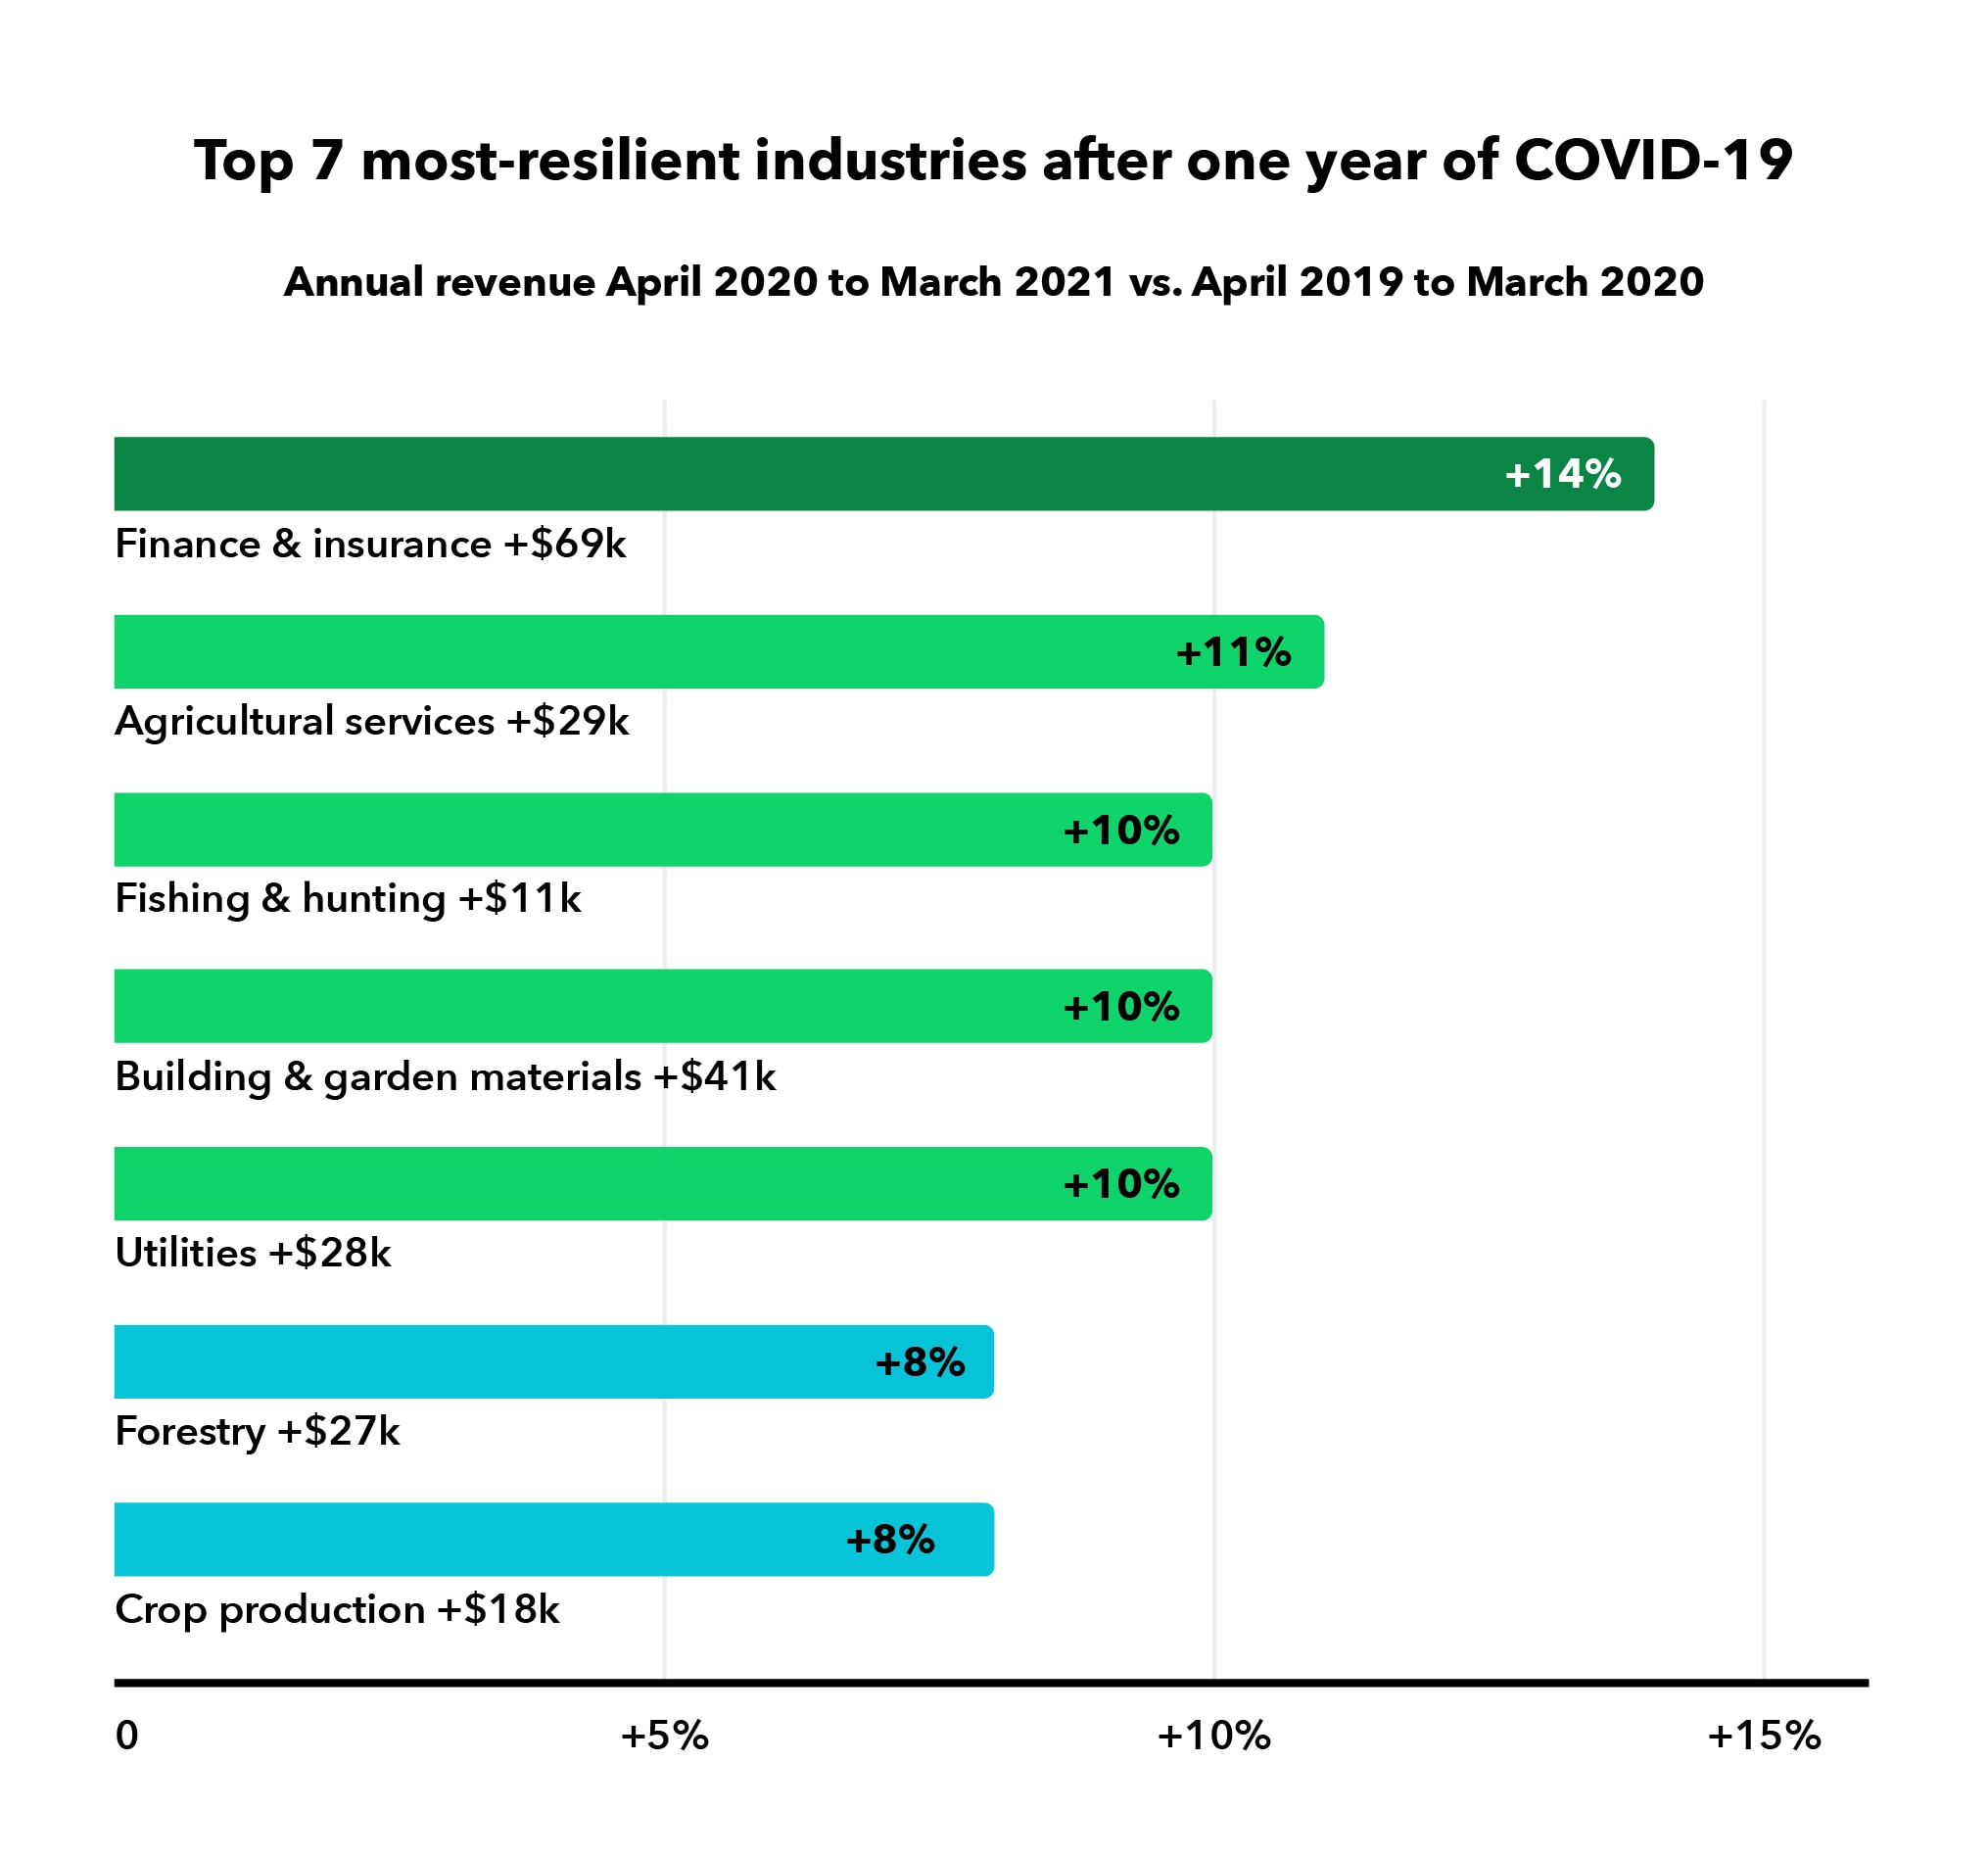 Top 7 most resilient industries after one year of COVID-19